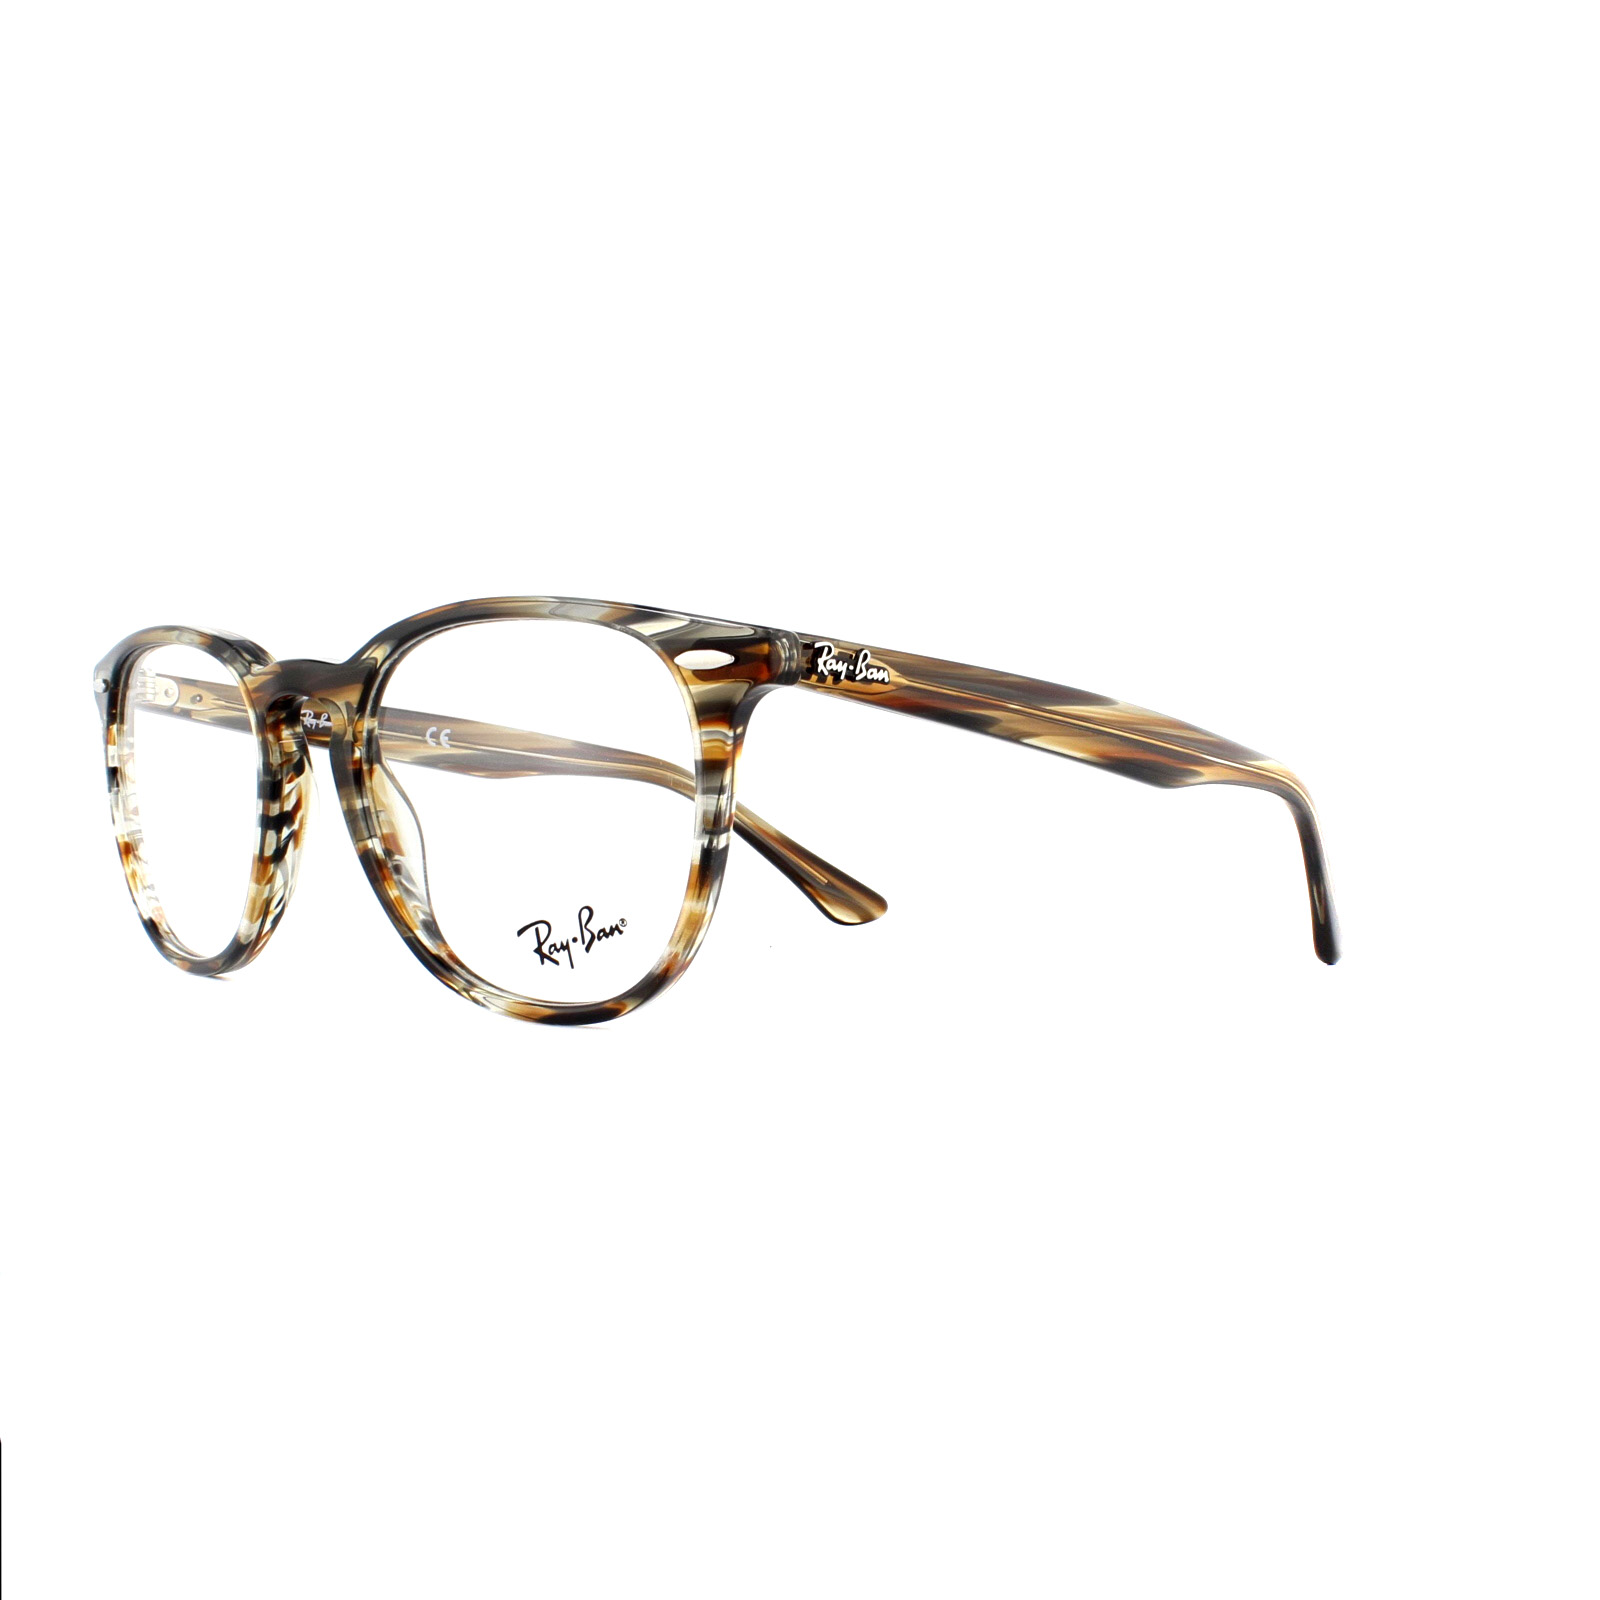 8548c7f11b Sentinel Ray-Ban Glasses Frames 7159 5798 Brown Grey Striped 50mm